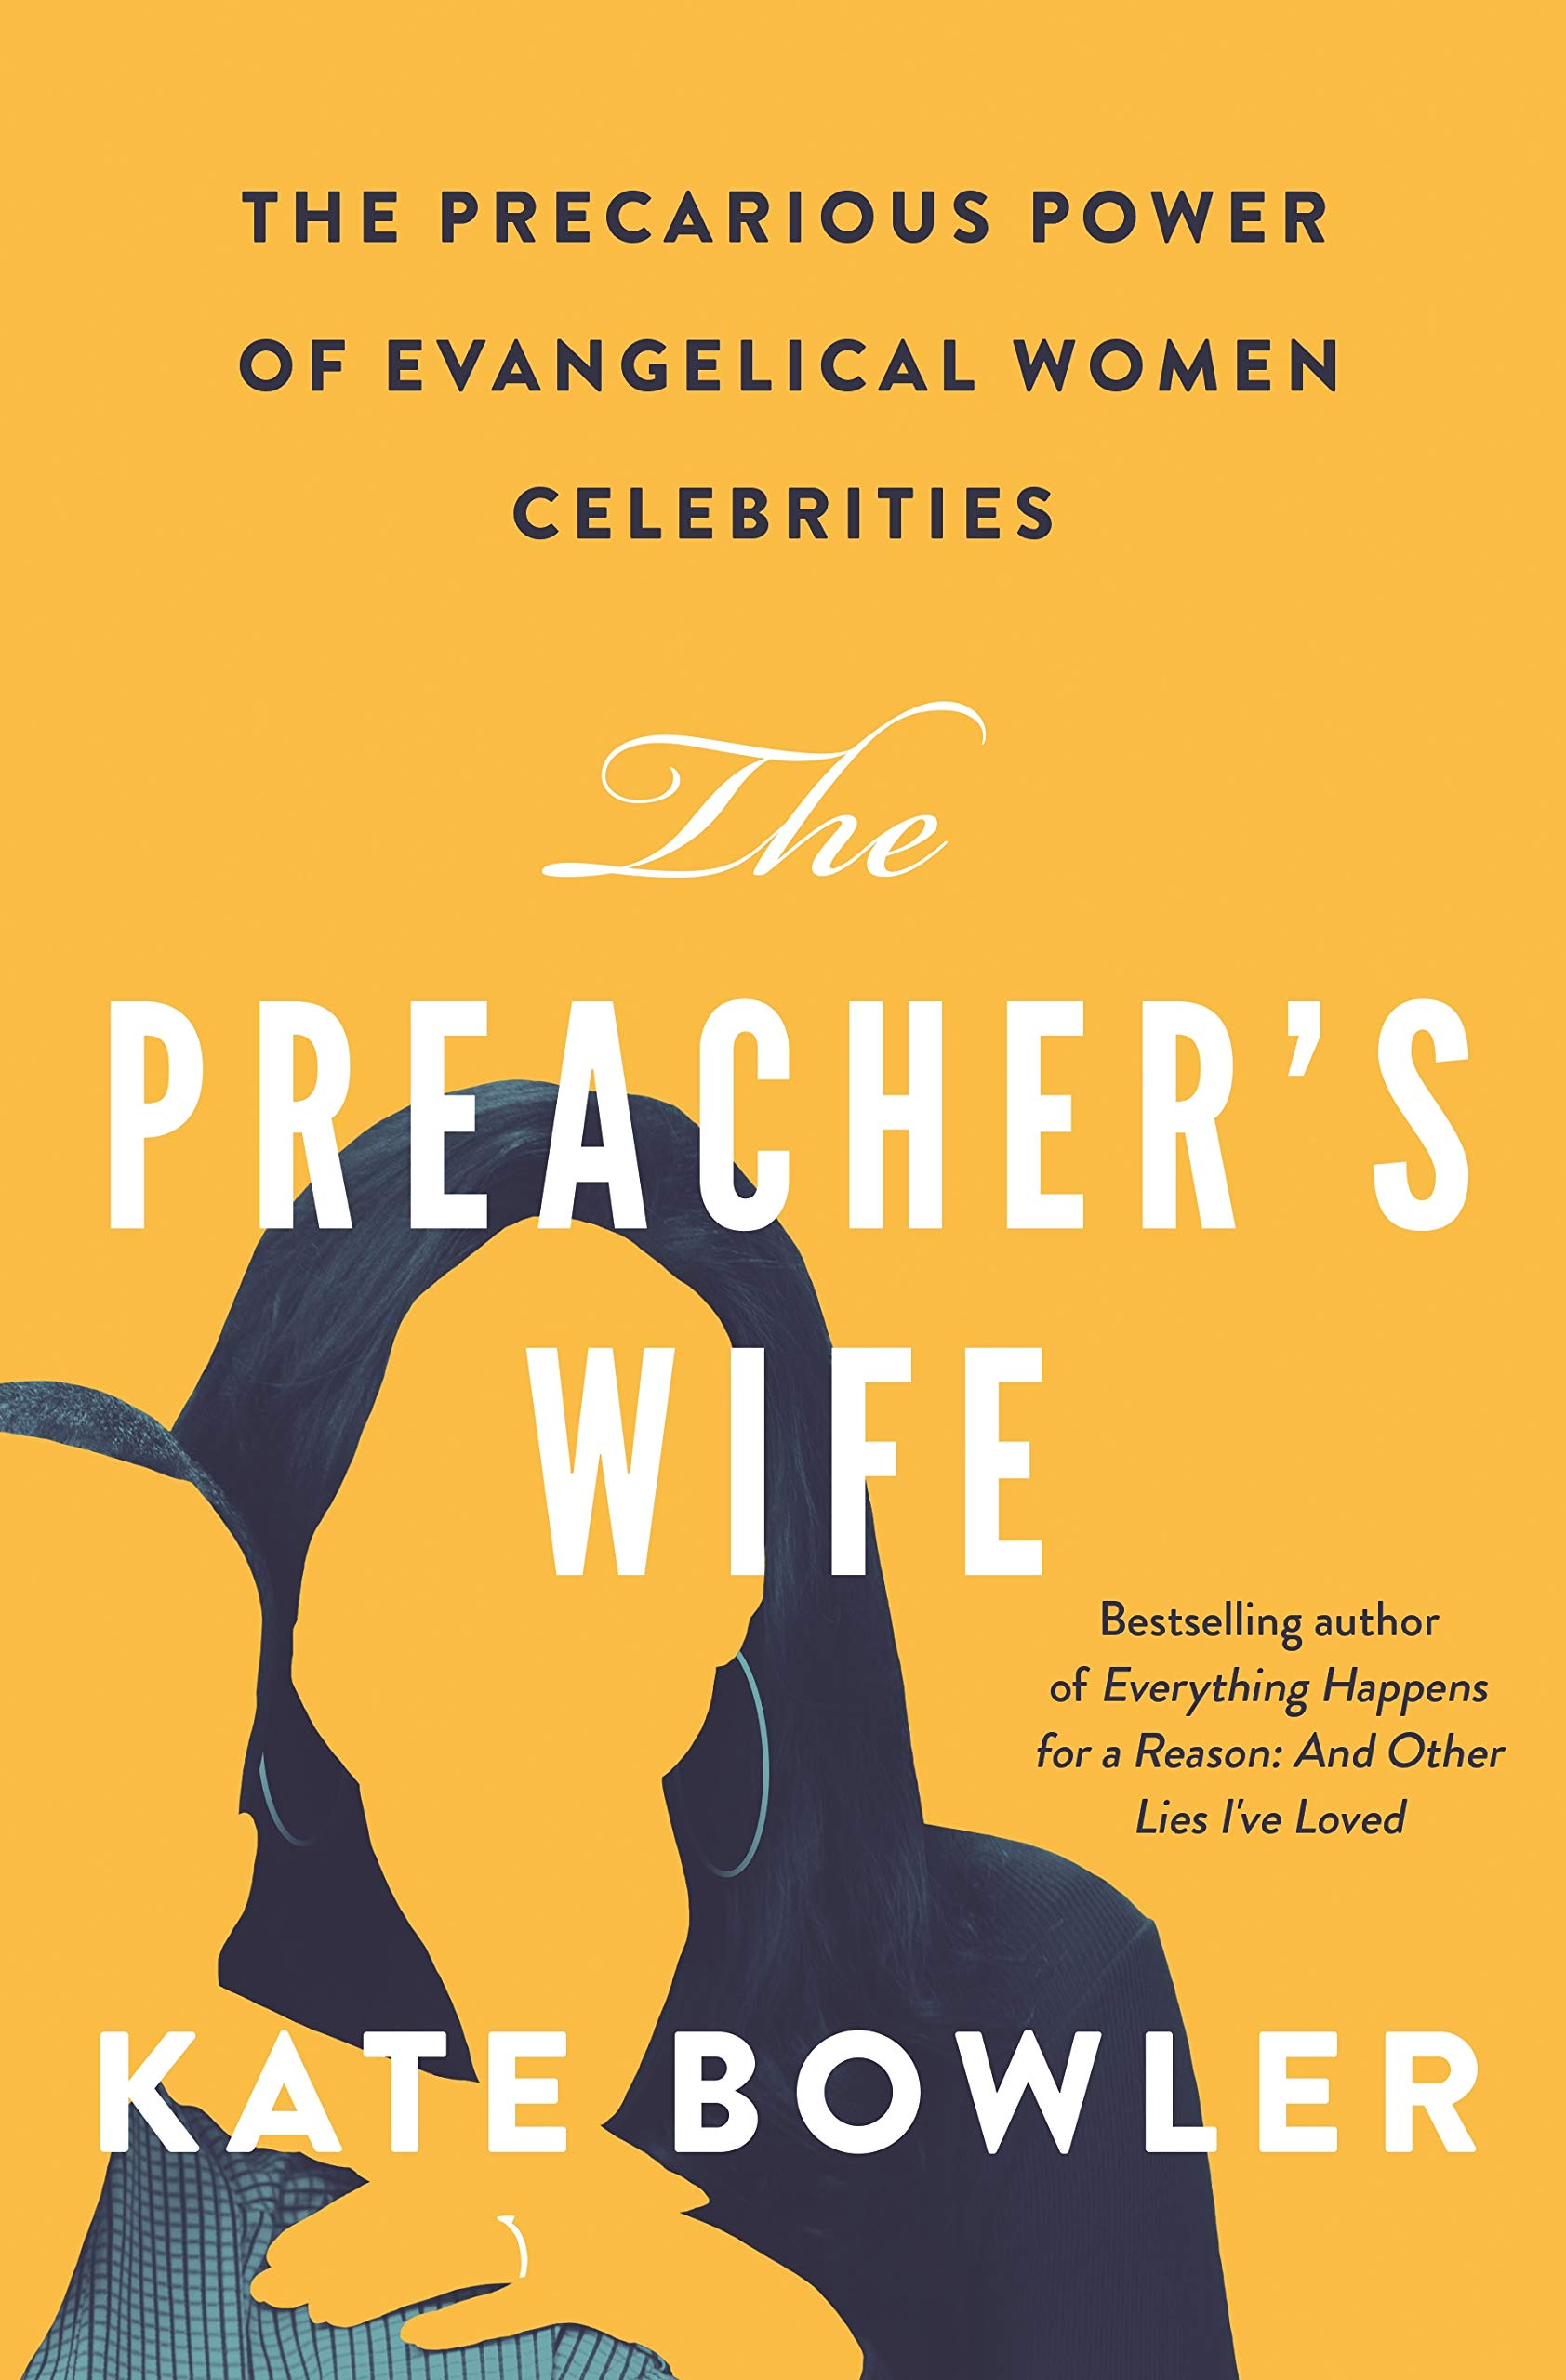 Cover of The Preacher's Wife. A silhouetted female figure places her hand on the shoulder of a male figure.